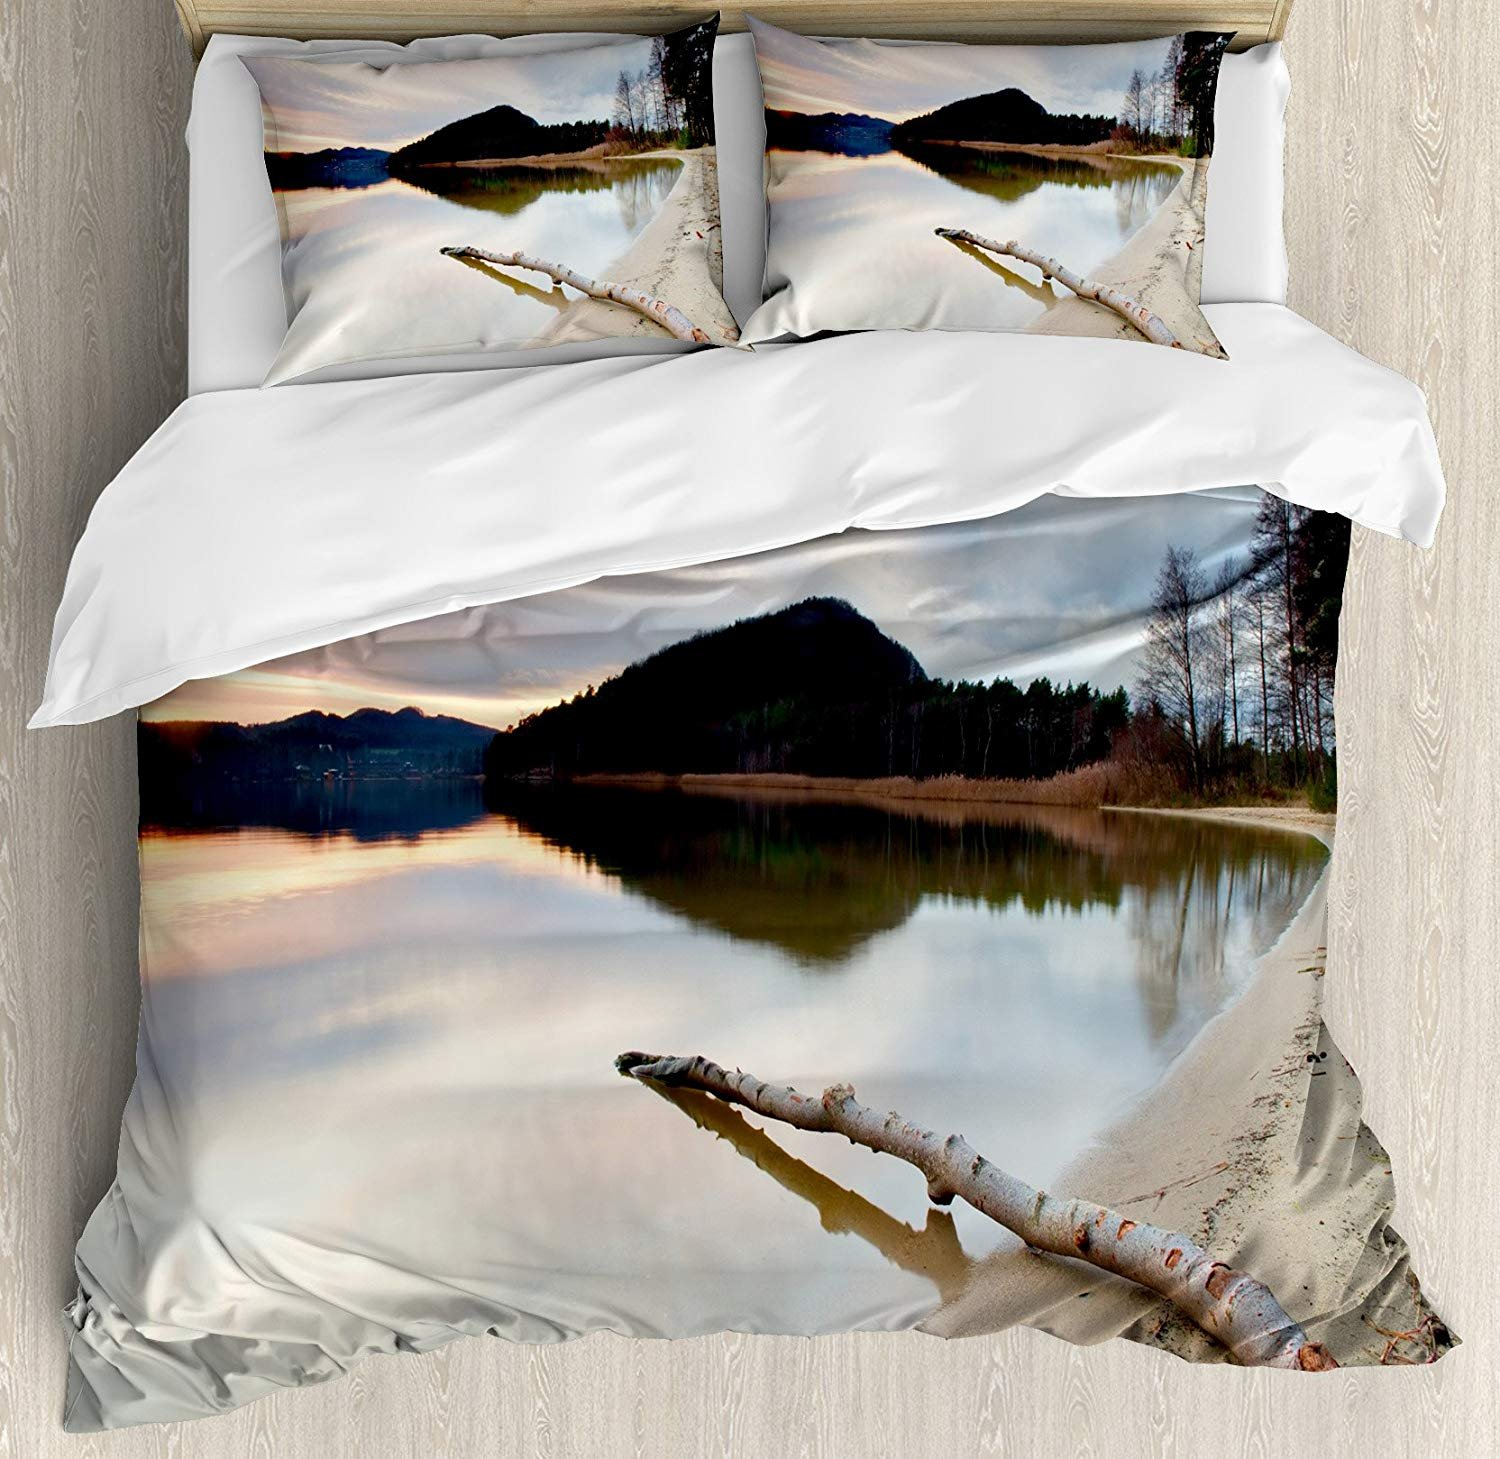 Driftwood Bedding Duvet Cover Sets for Children/Adult/Kids/Teens Twin Size, Landscape of Lake Shoreline with The Dead Tree Trunk in The Water Digital Print, Hotel Luxury Decorative 4pcs, Sand Brown by Family Decor (Image #1)